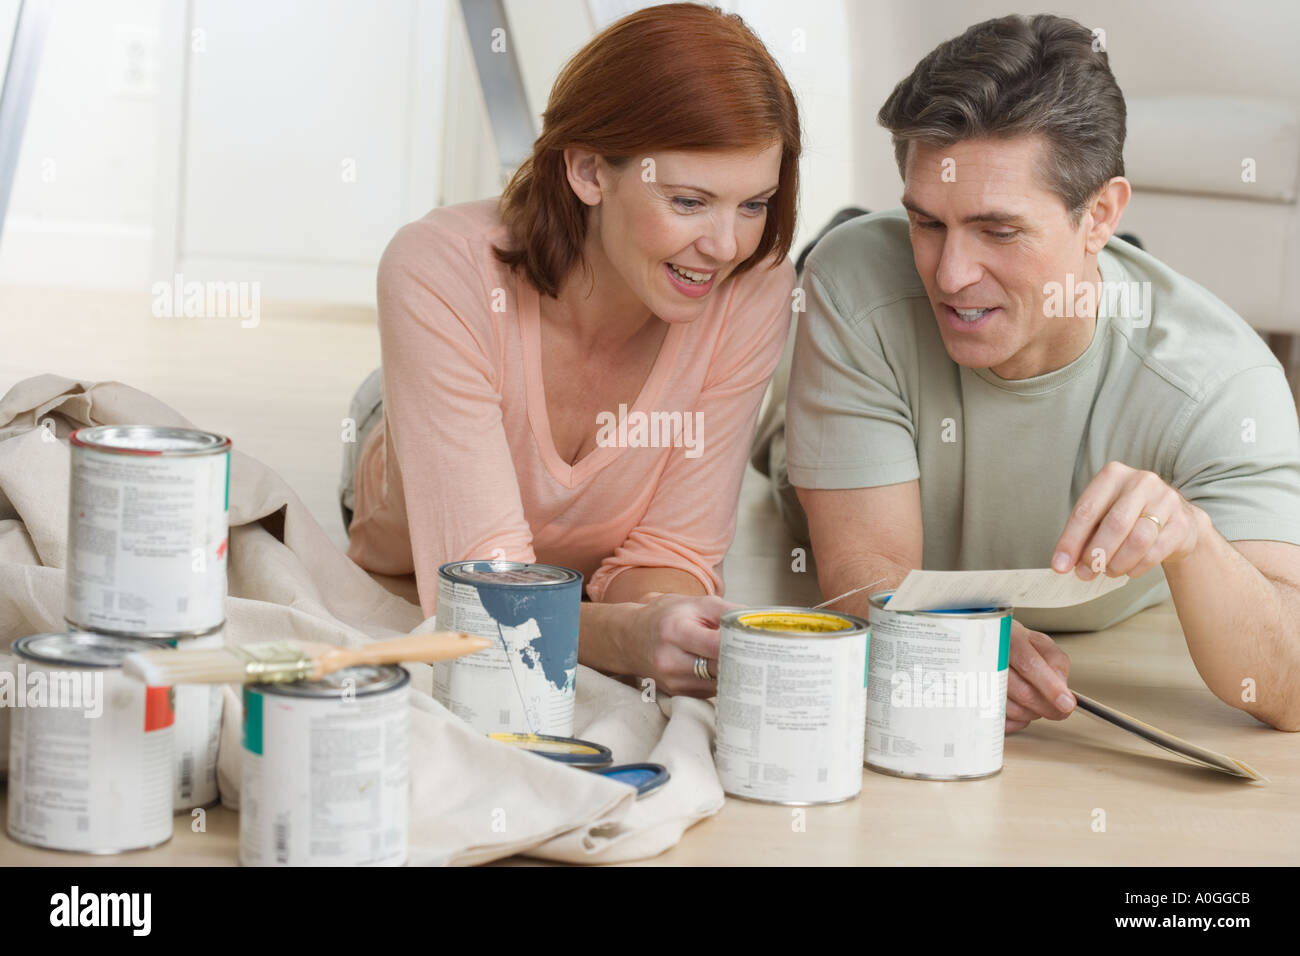 Couple discussing paint color choices - Stock Image